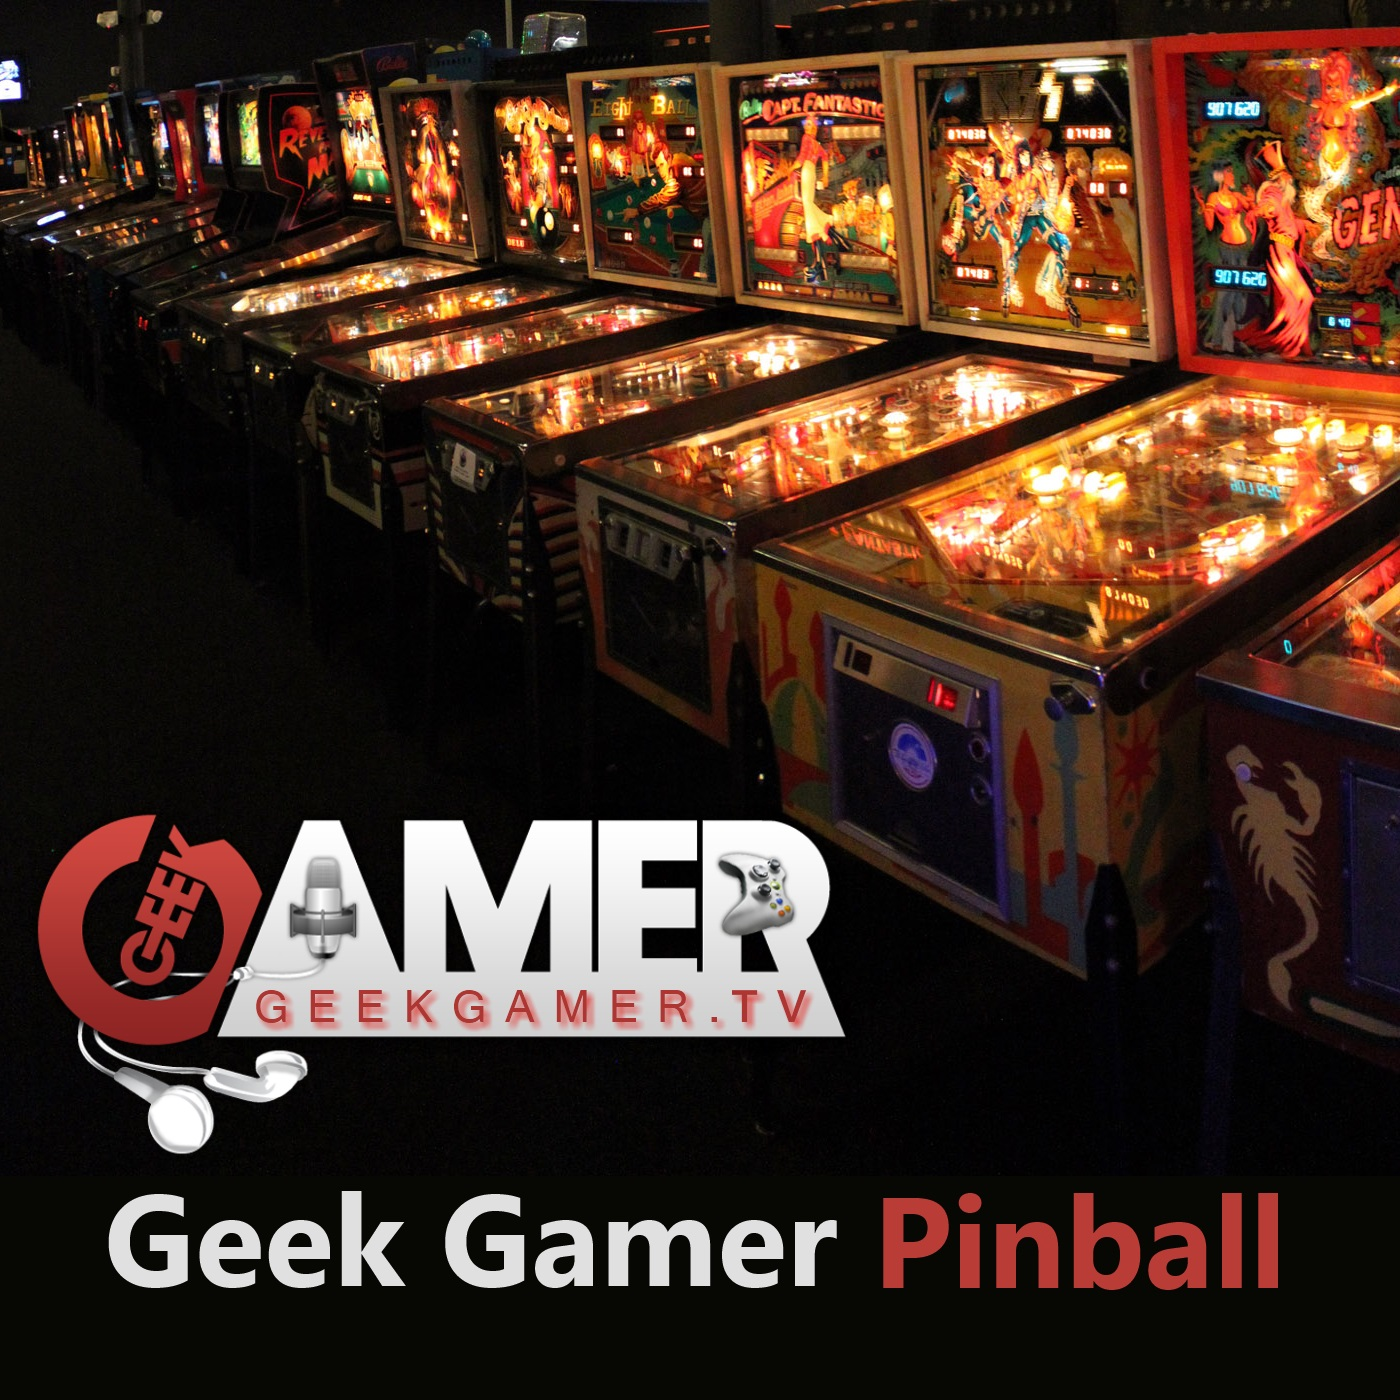 Geek Gamer Pinball